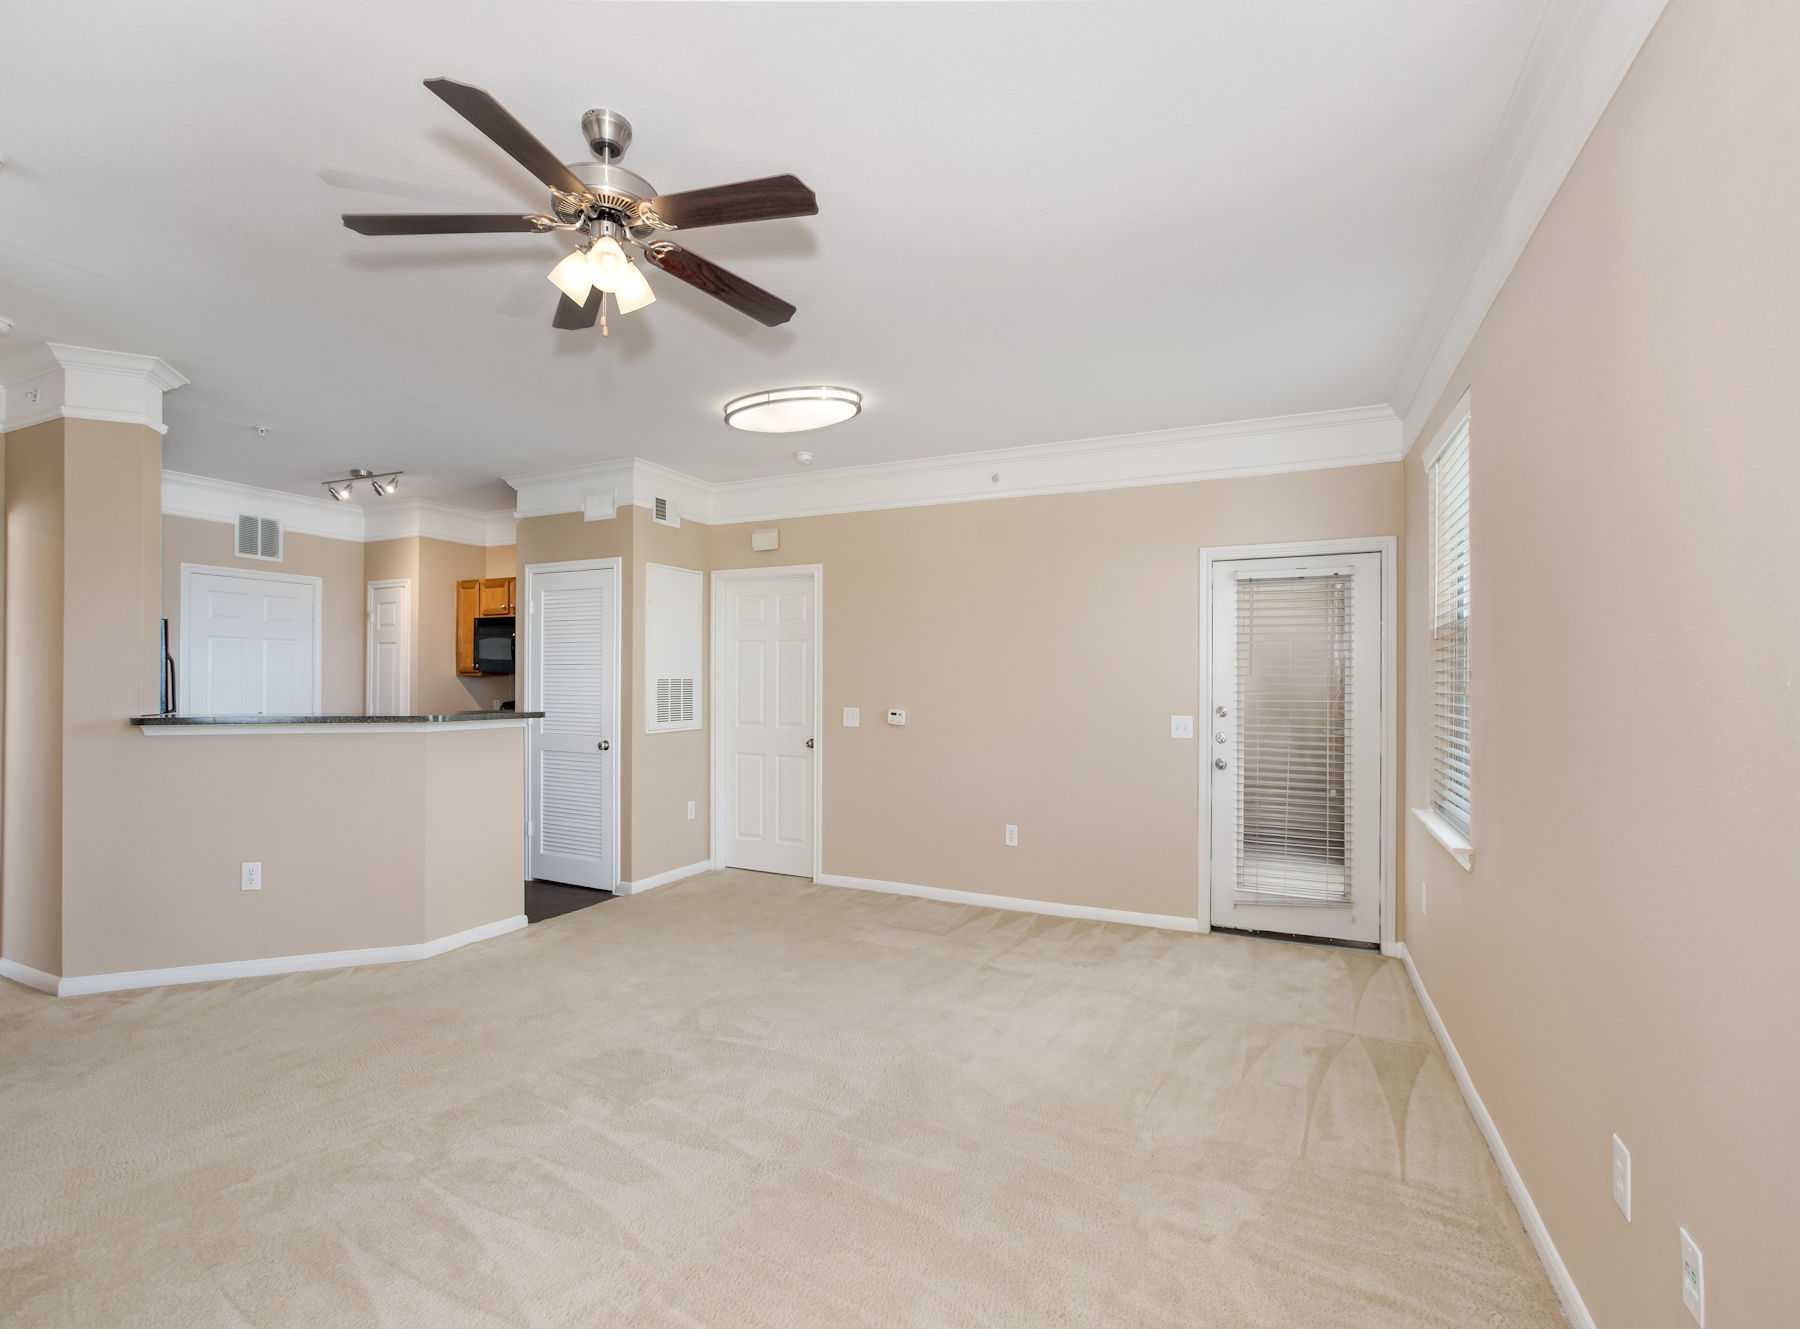 Model living room with ceiling fan, carpet, and modern two tone paint.